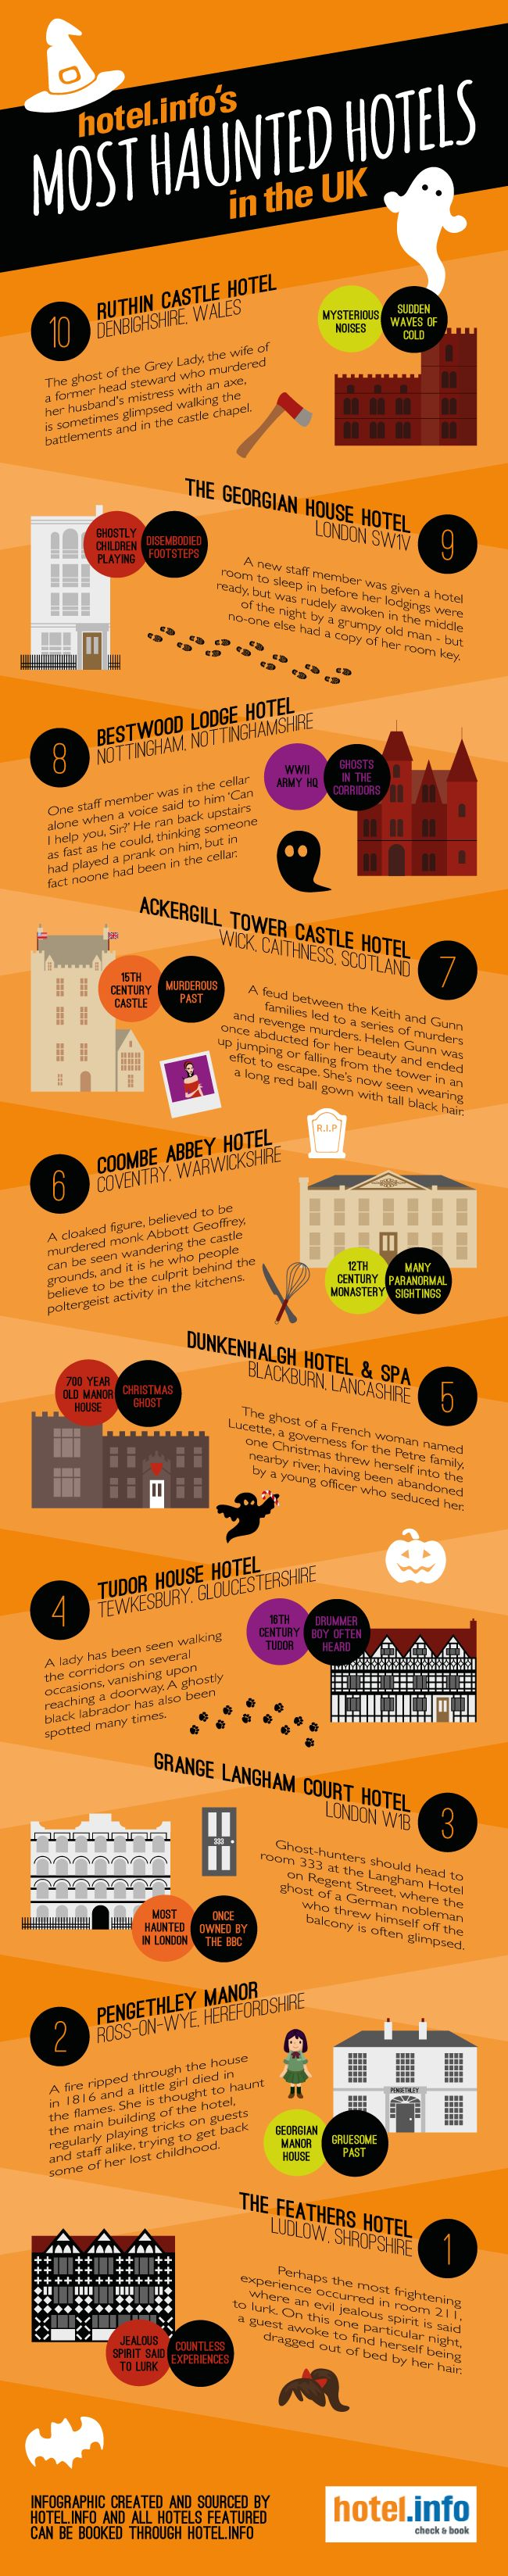 Best 25+ Haunted hotel ideas on Pinterest | Most haunted, A ...